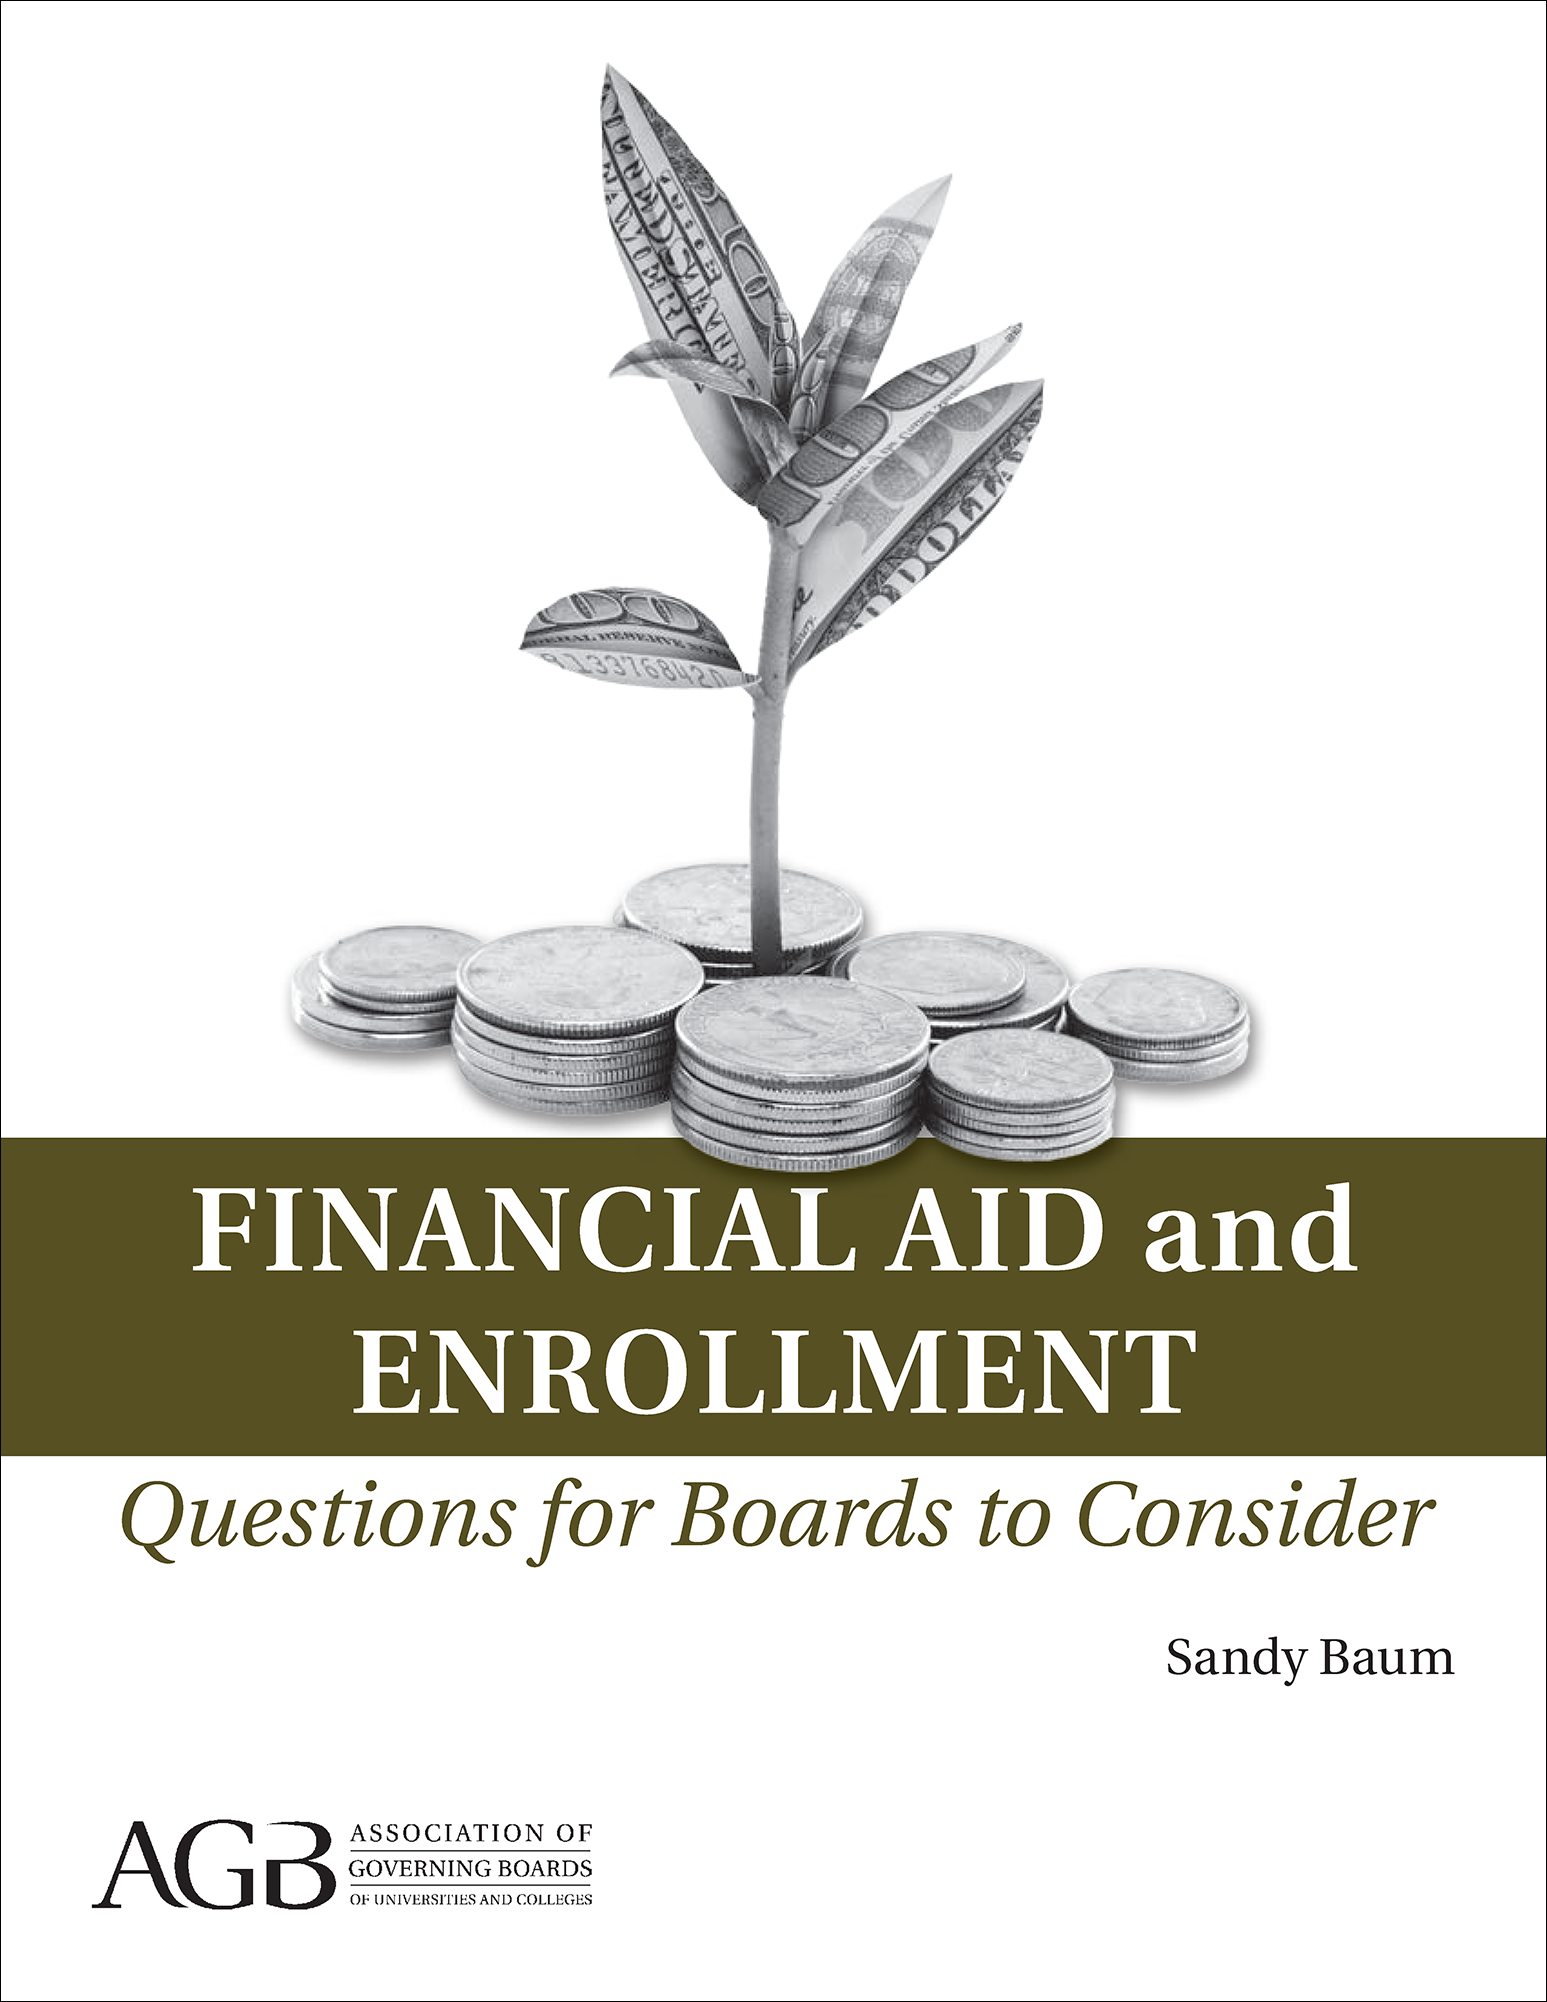 Financial Aid and Enrollment: Questions for Boards to Consider